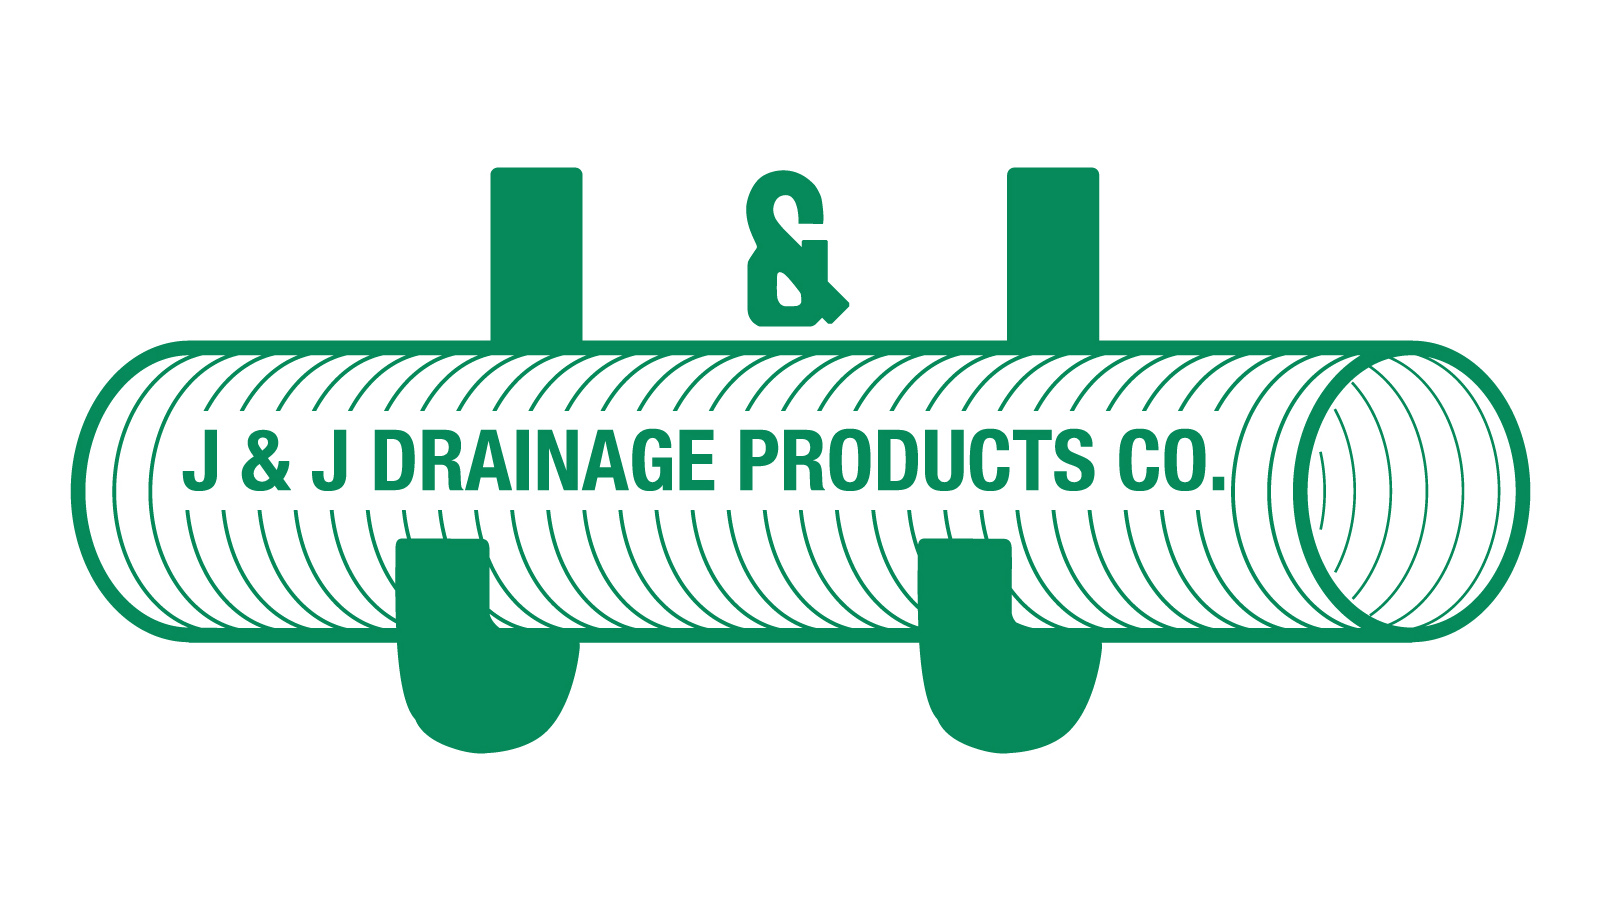 J&J Drainage products